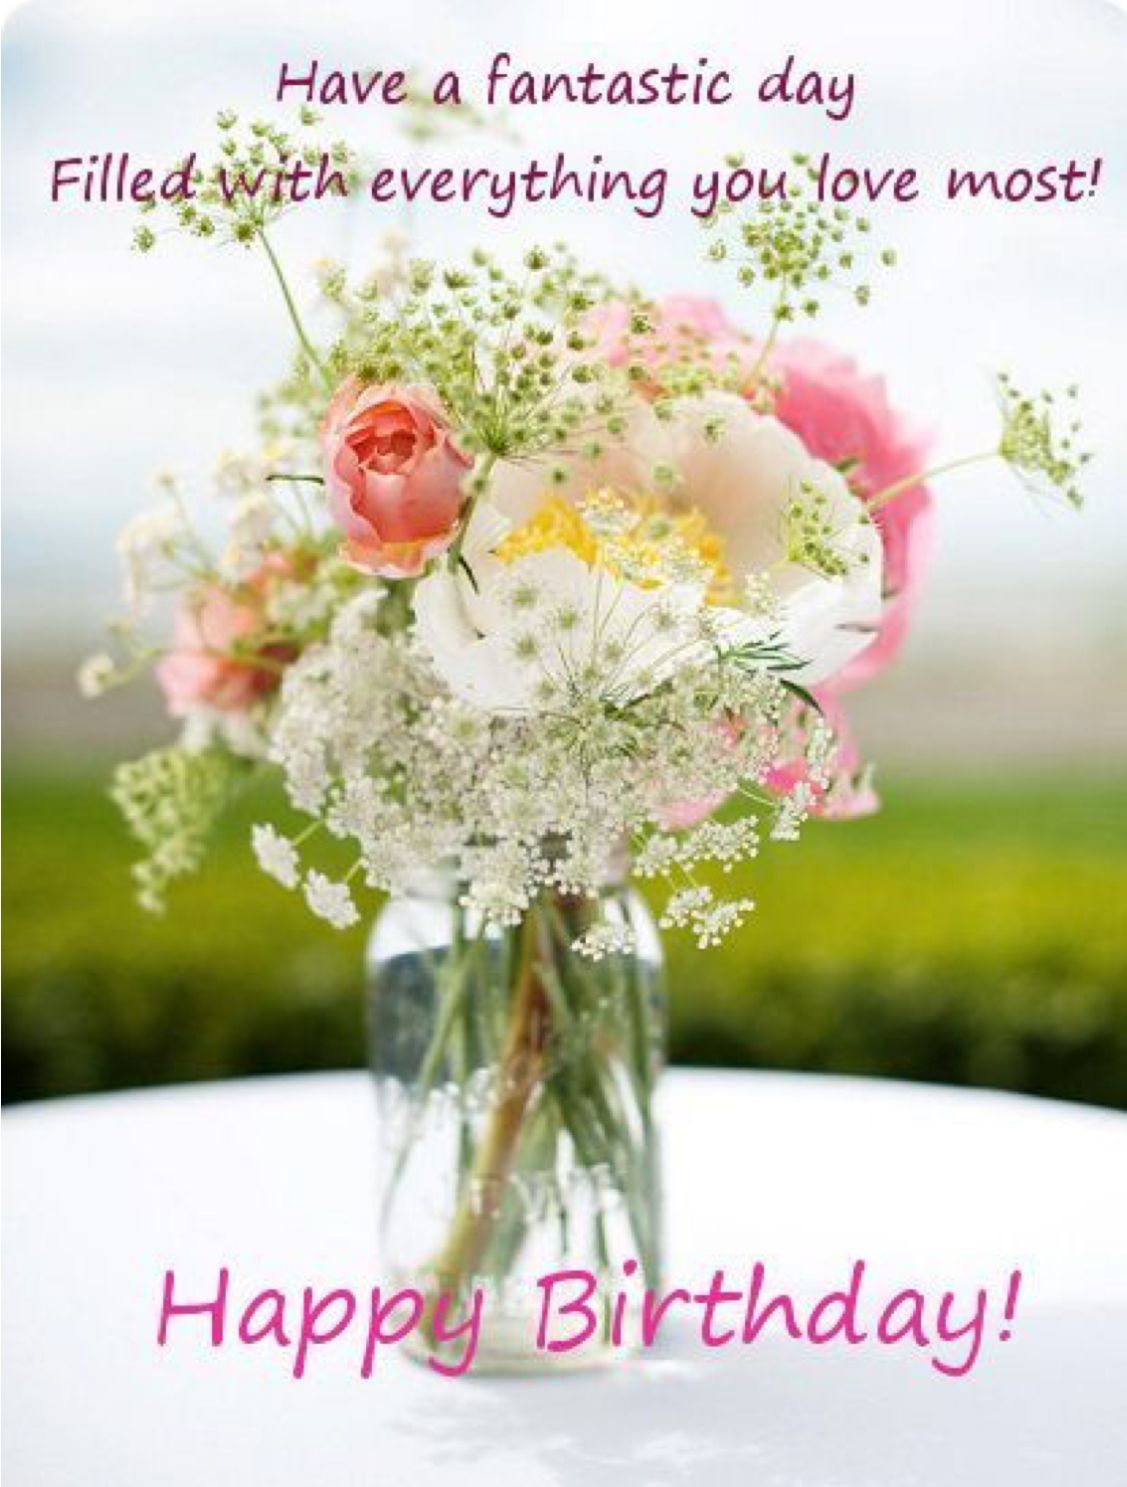 Pin By Katharina Smietana On Happy Birthday Pinterest Happy Birthday